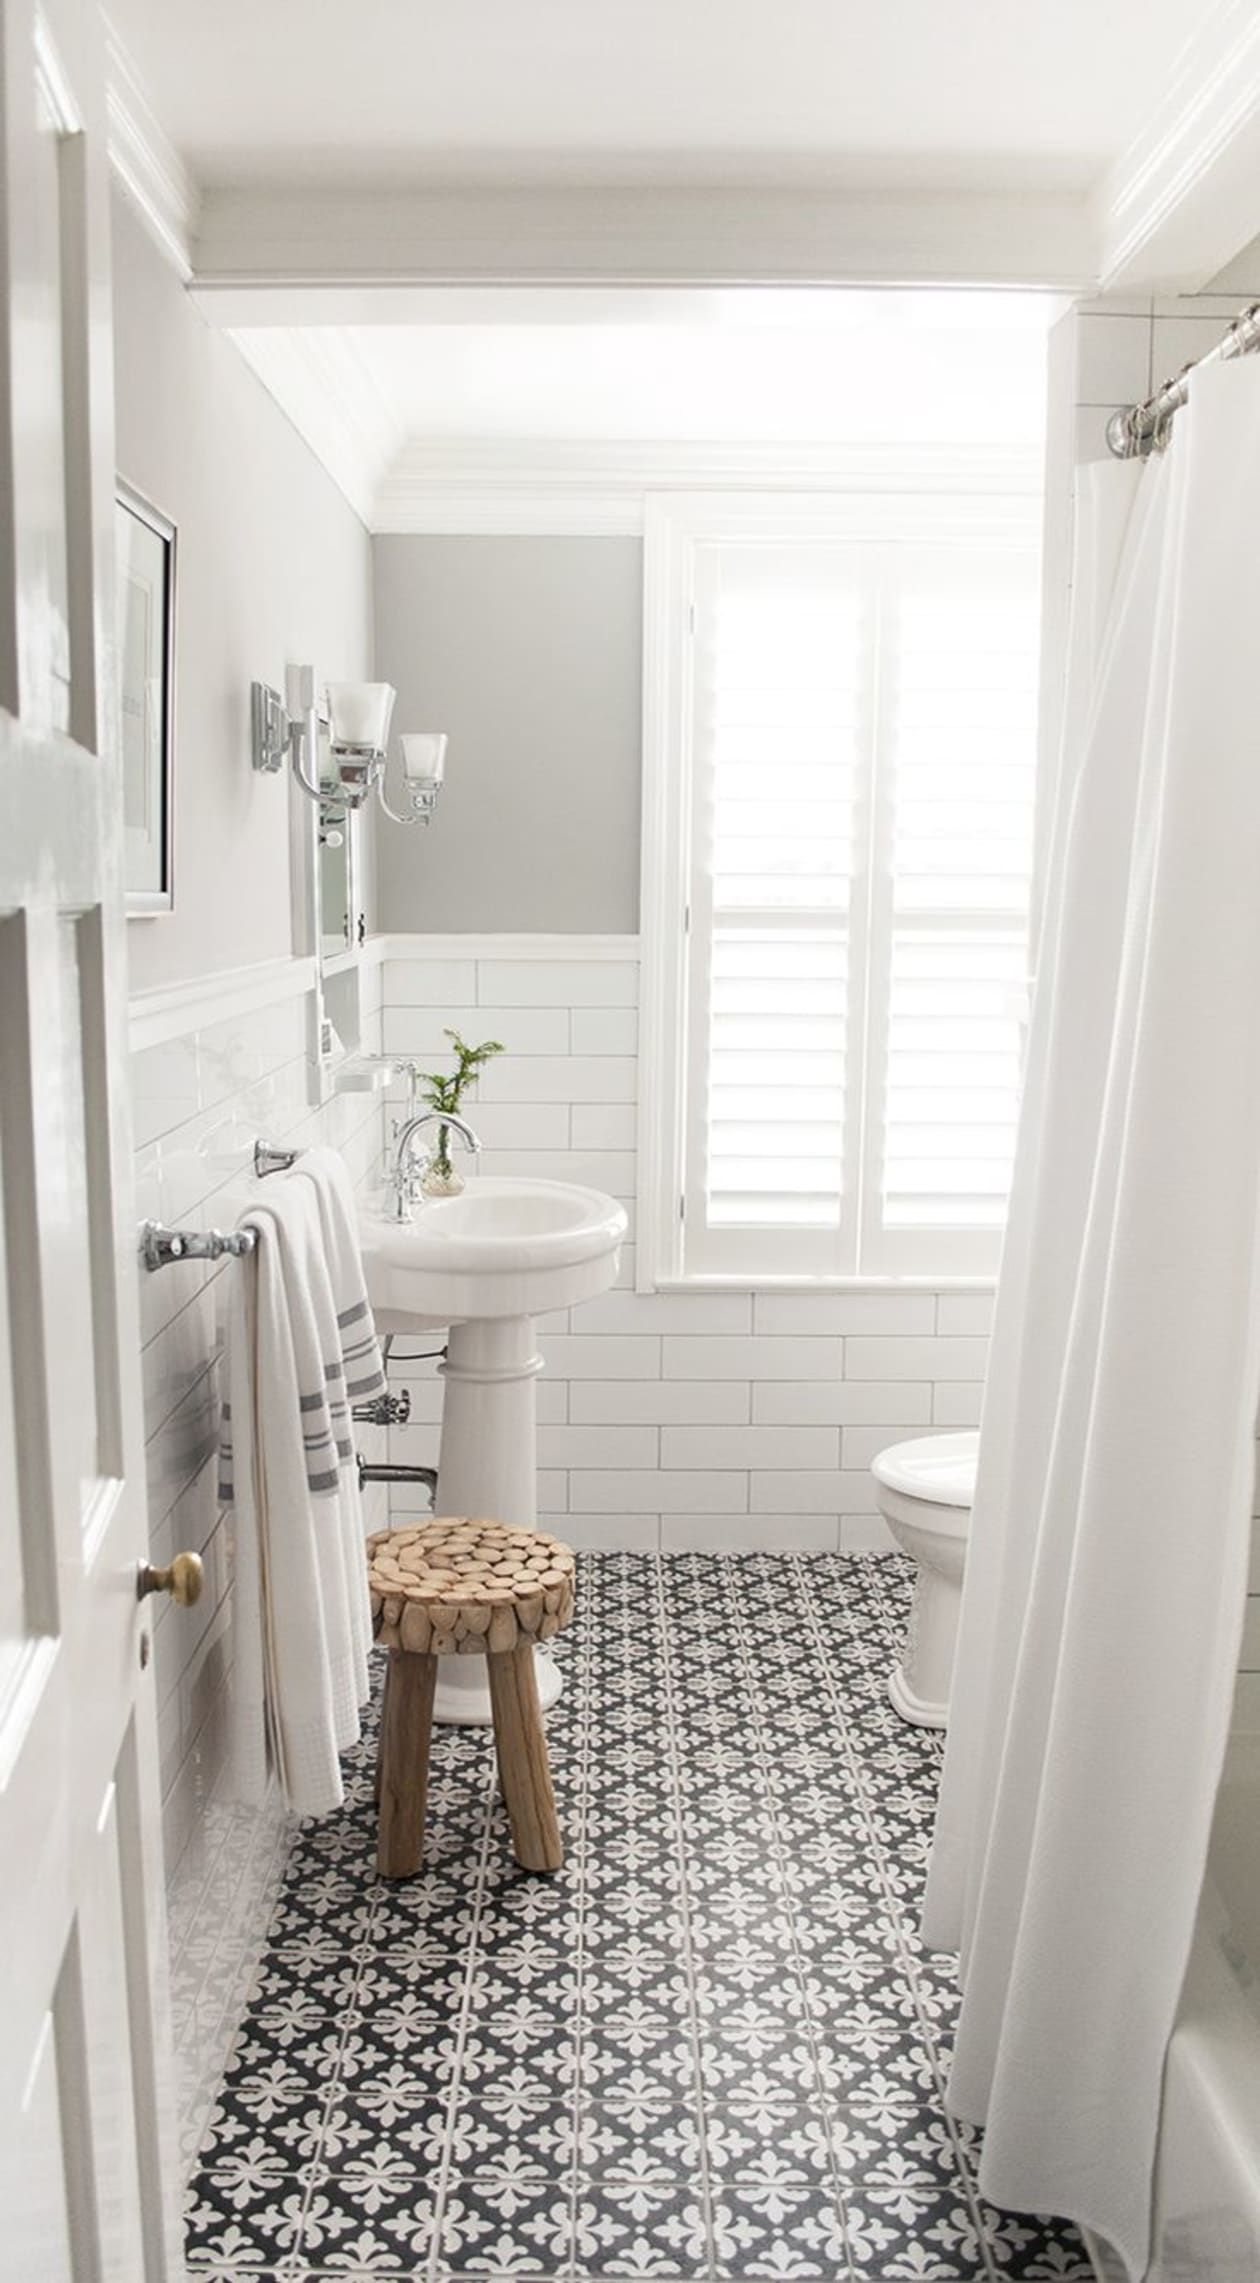 Beyond Good Looks Add Value And Style To Your Home With This One Element In 2020 Bathroom Remodel Master Bathroom Design Black Bathroom Design Small